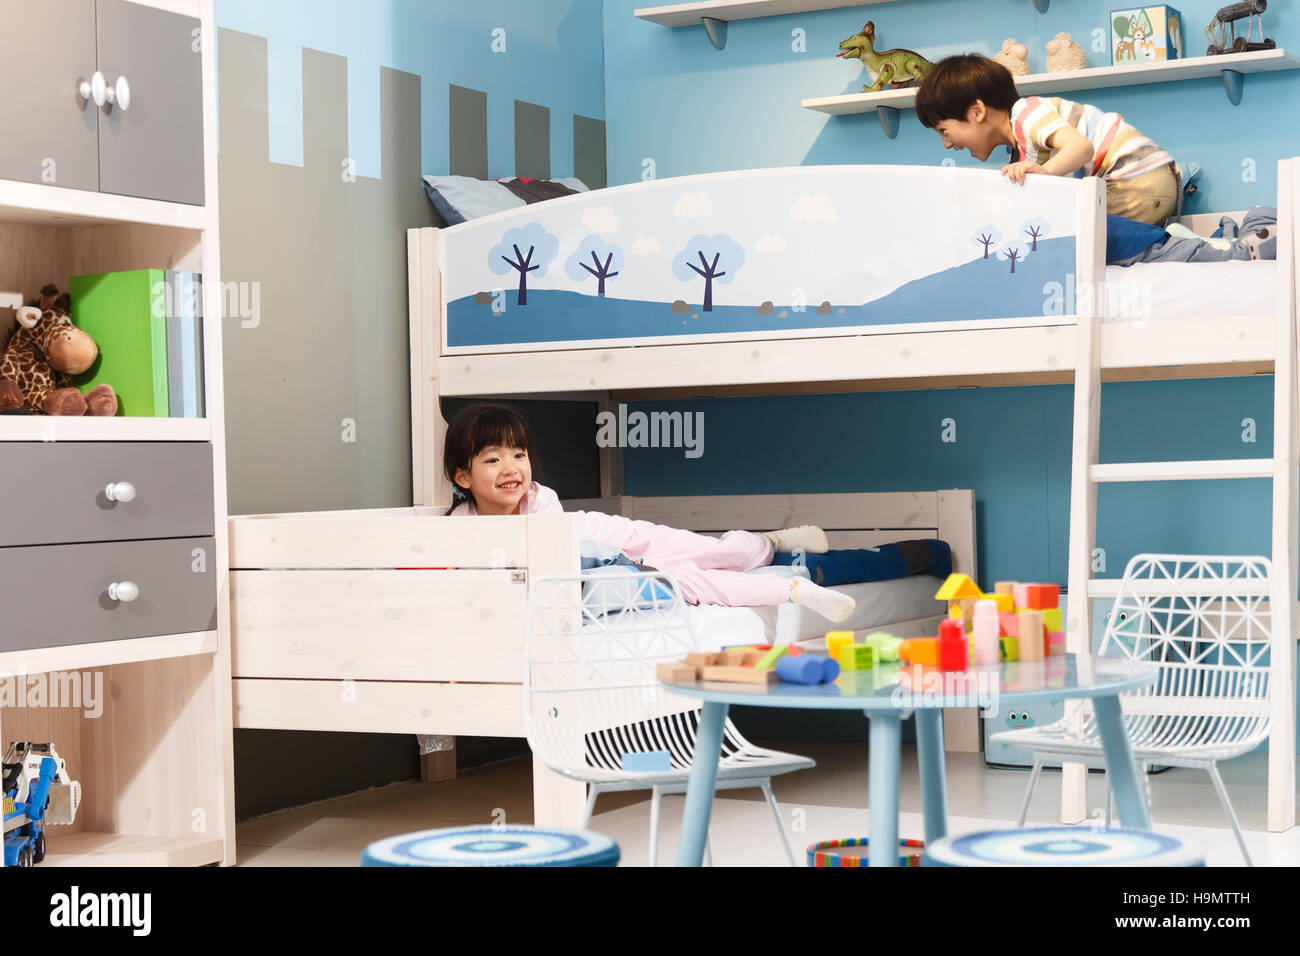 Two children play in a bunk bed - Stock Image